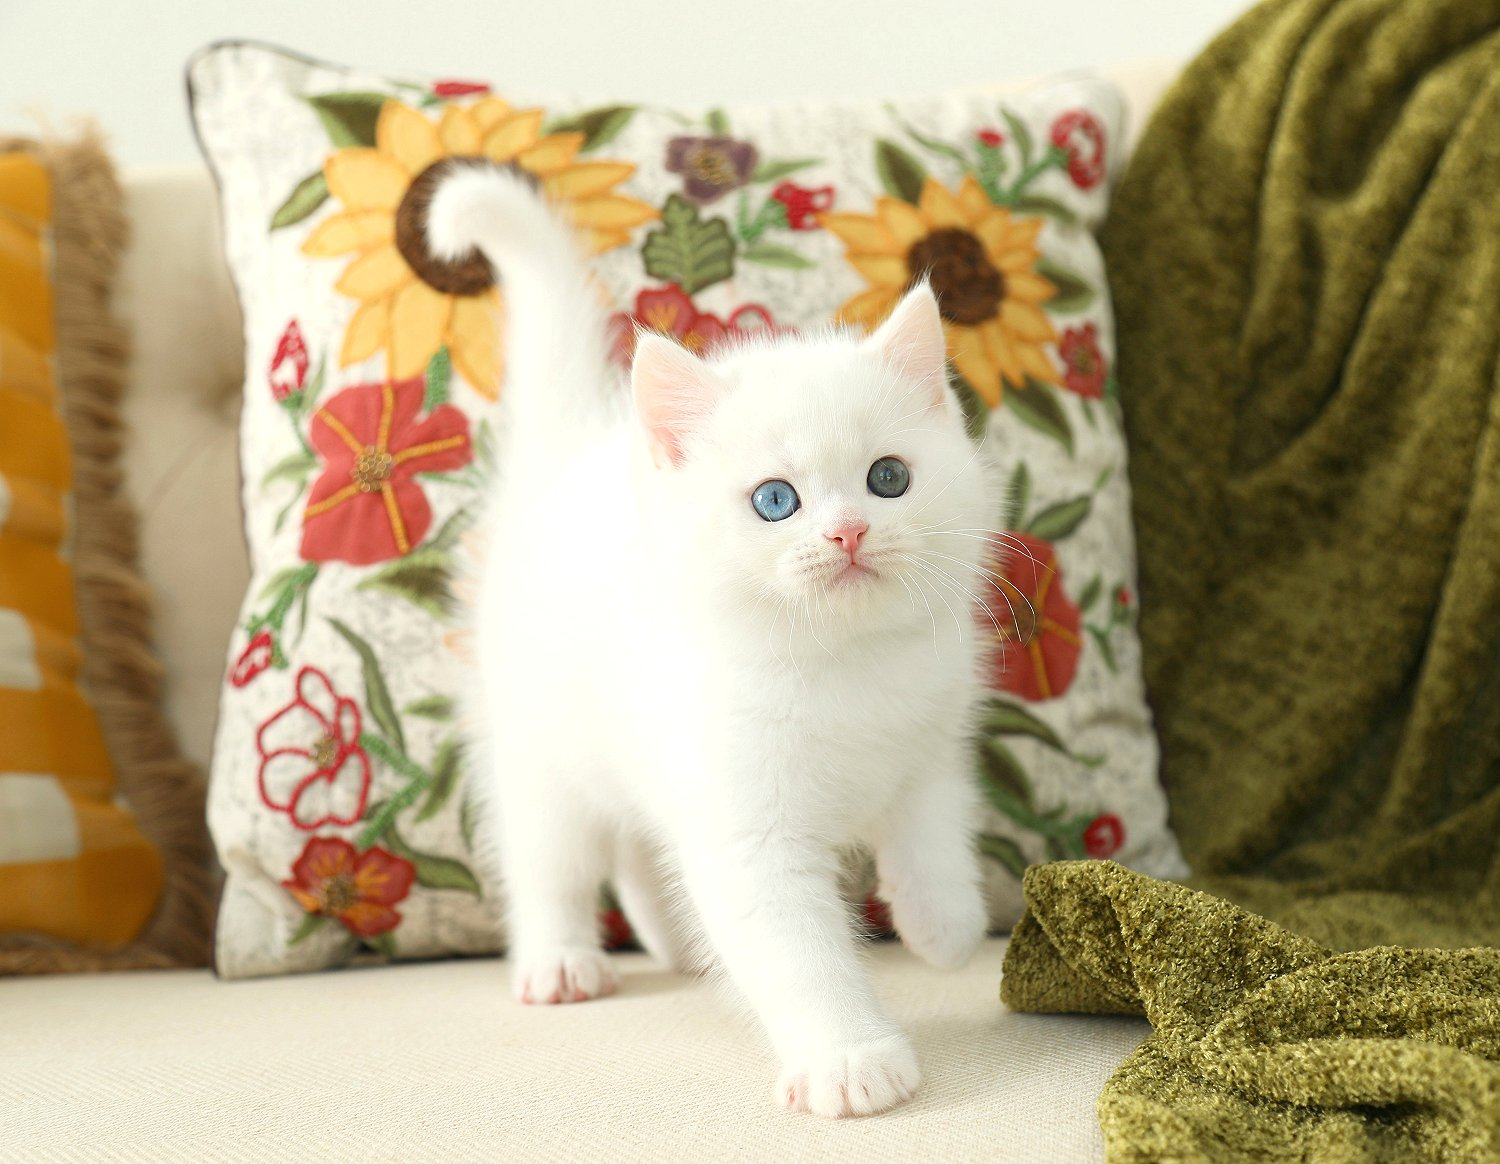 Doll Face Persian Kittens White Persian Kitten